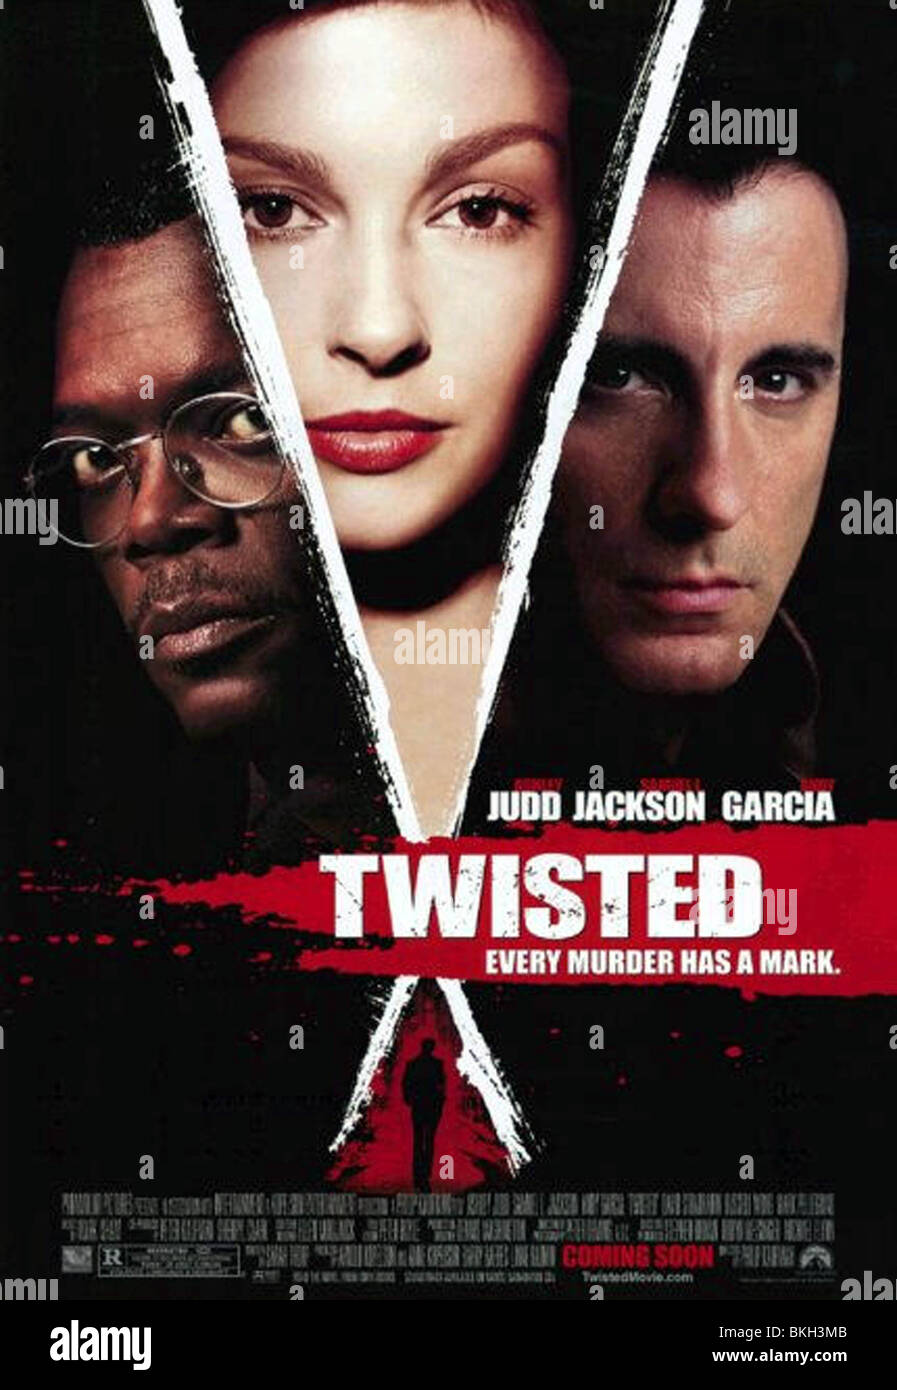 TWISTED -2004 POSTER - Stock Image